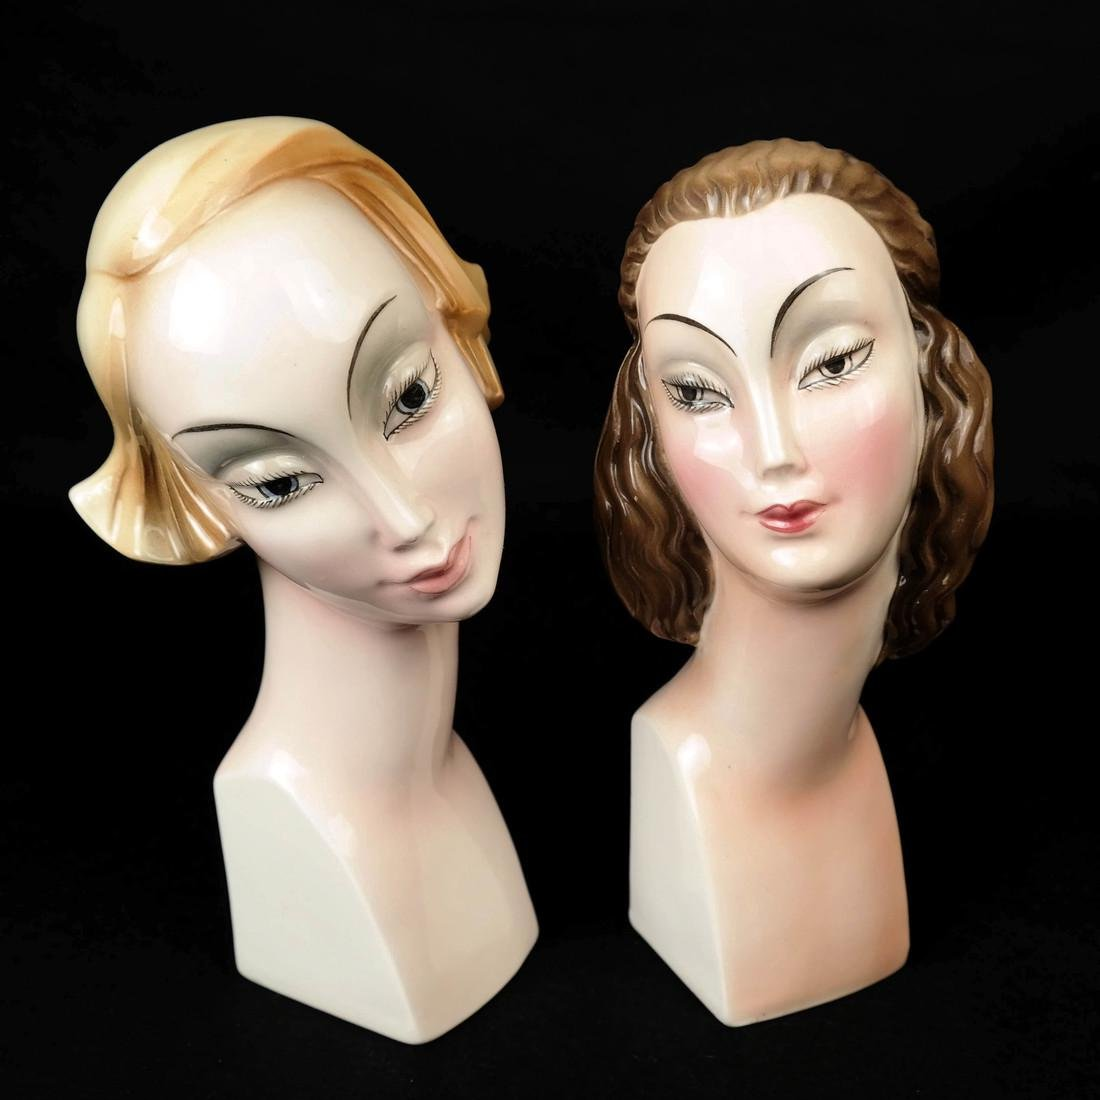 Four Art Deco Style HERTWIG German Female Busts - 7